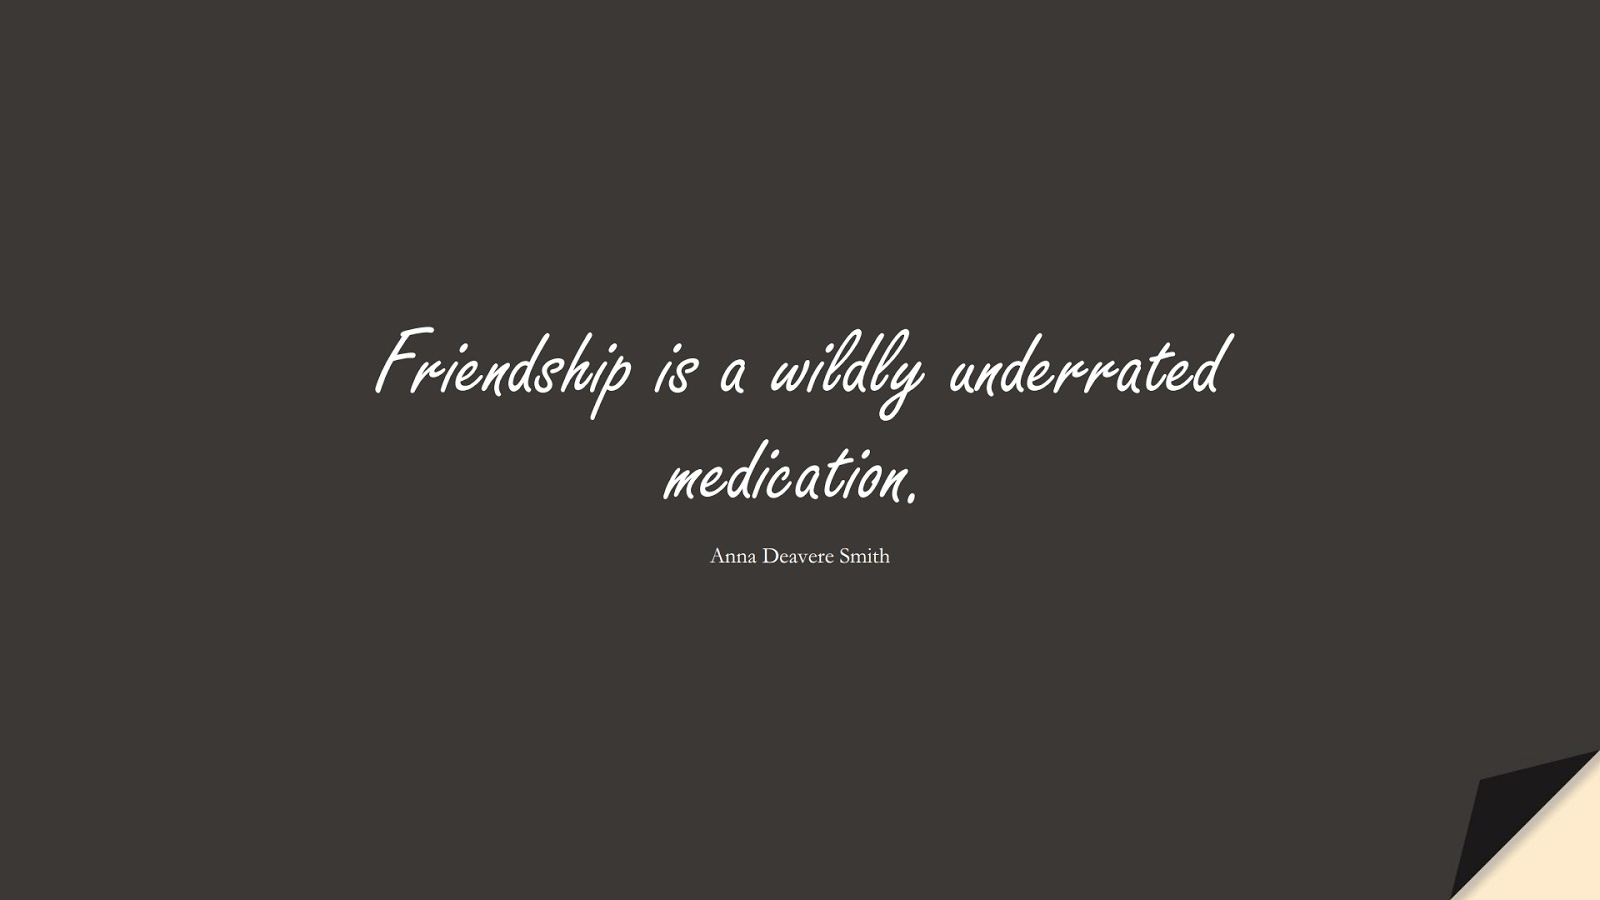 Friendship is a wildly underrated medication. (Anna Deavere Smith);  #FriendshipQuotes